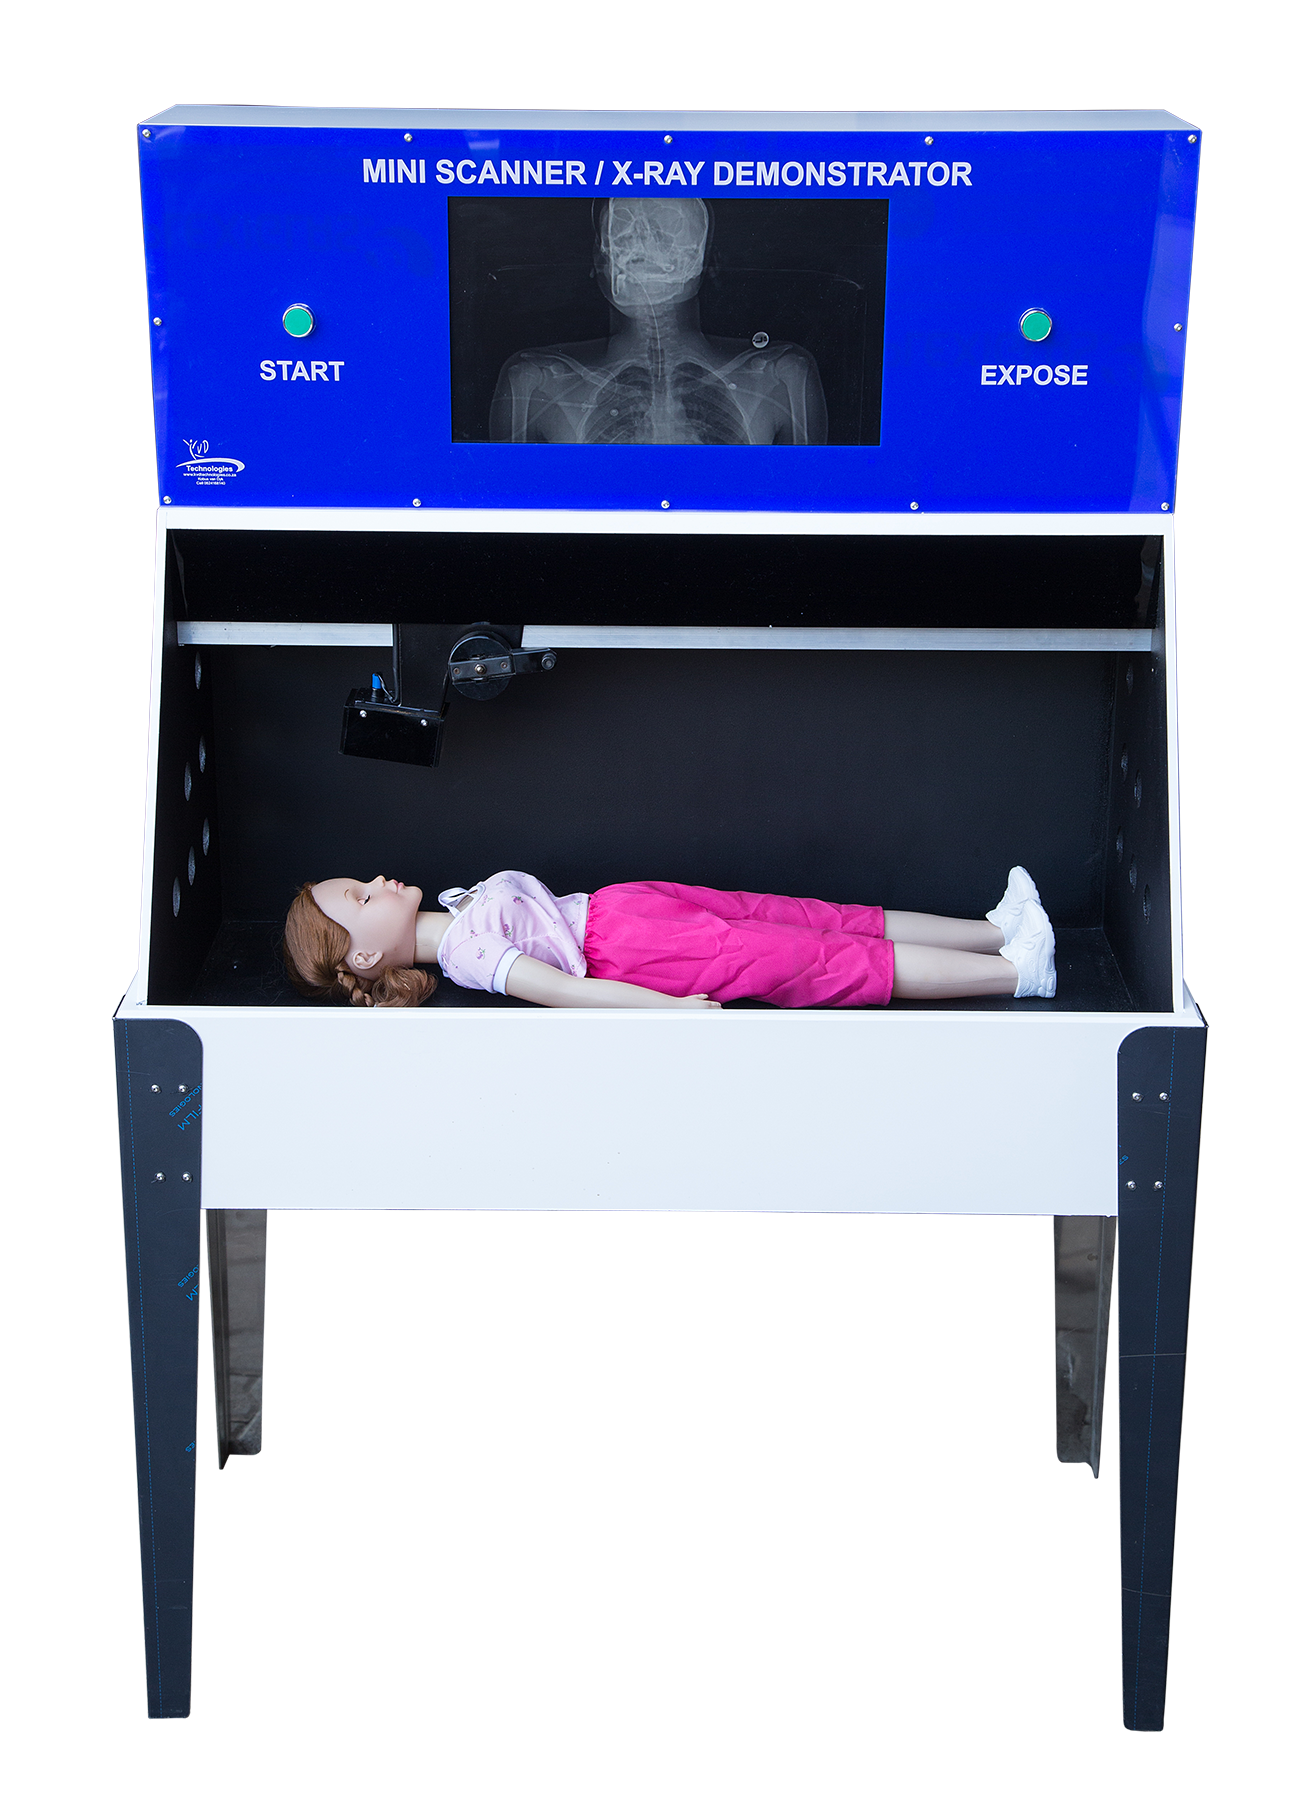 Mini Scanner/X-Ray demonstrator